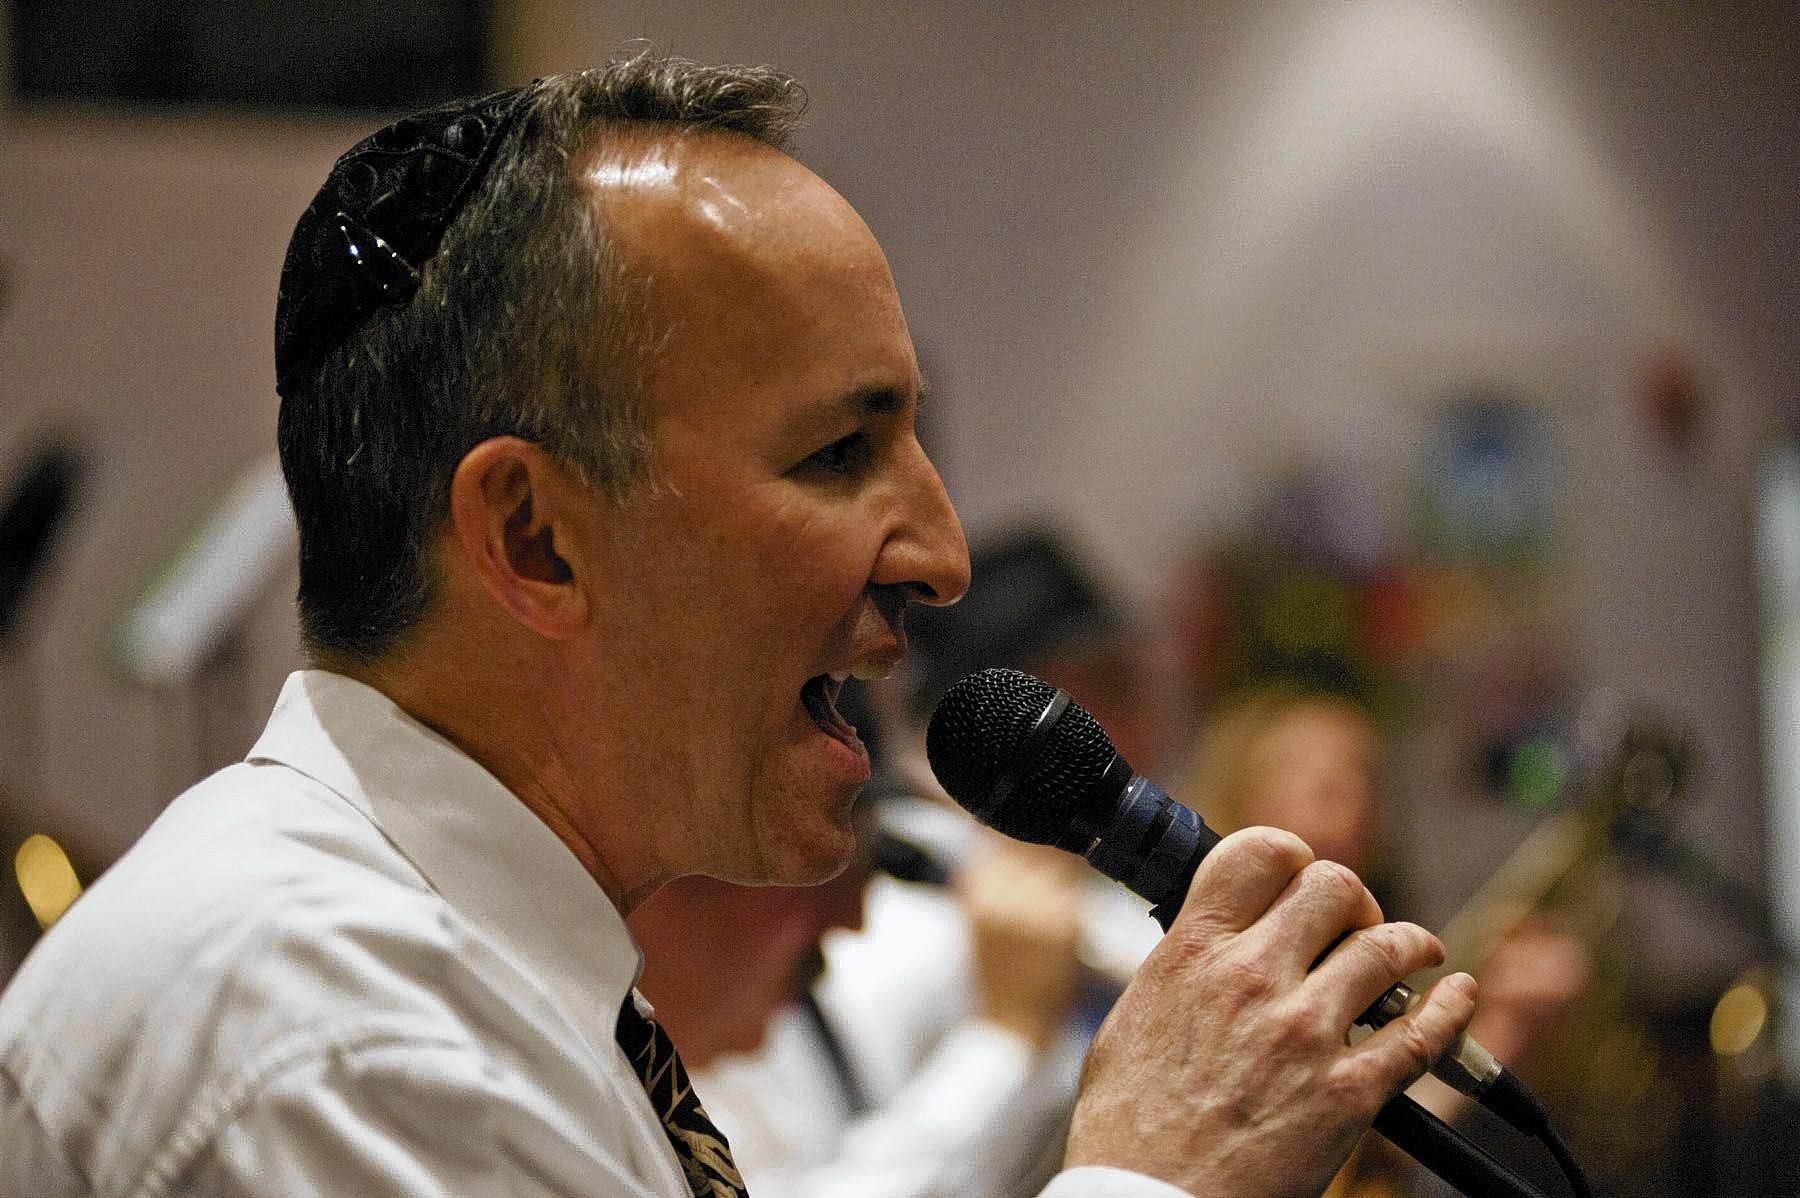 Glenn Solomon, singer for Divine Intervention, performs at Beth Shalom Congregation's benefit concert on Jan. 25.